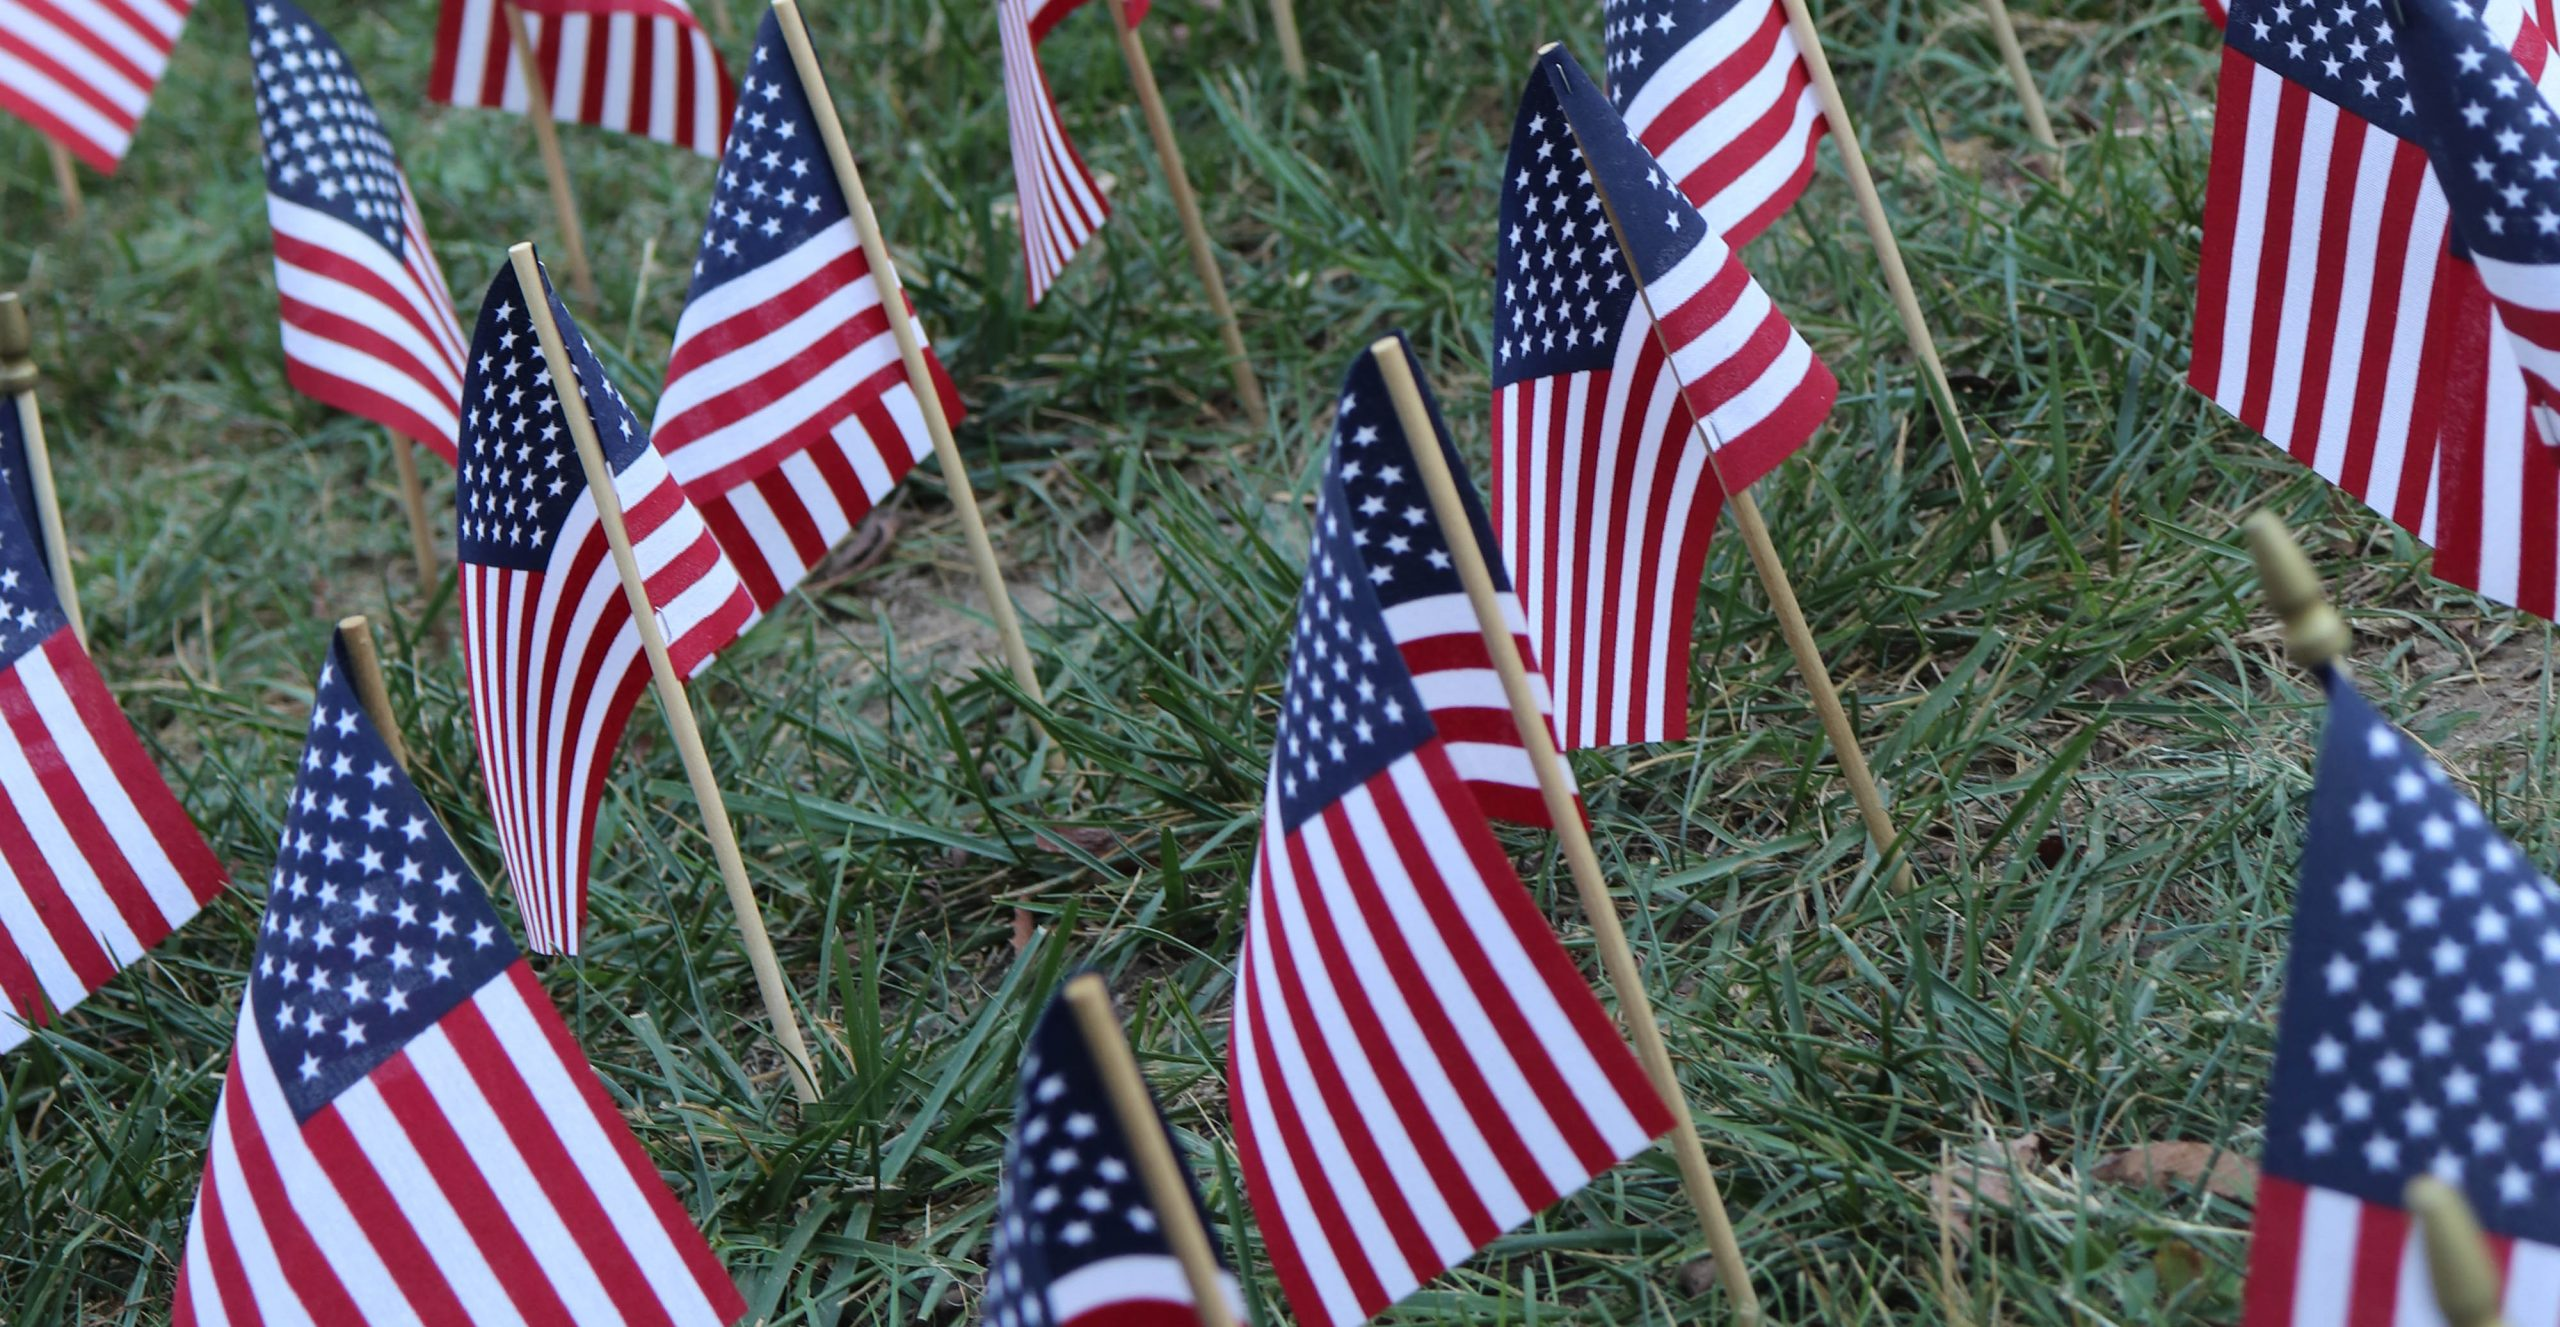 American flags on campus